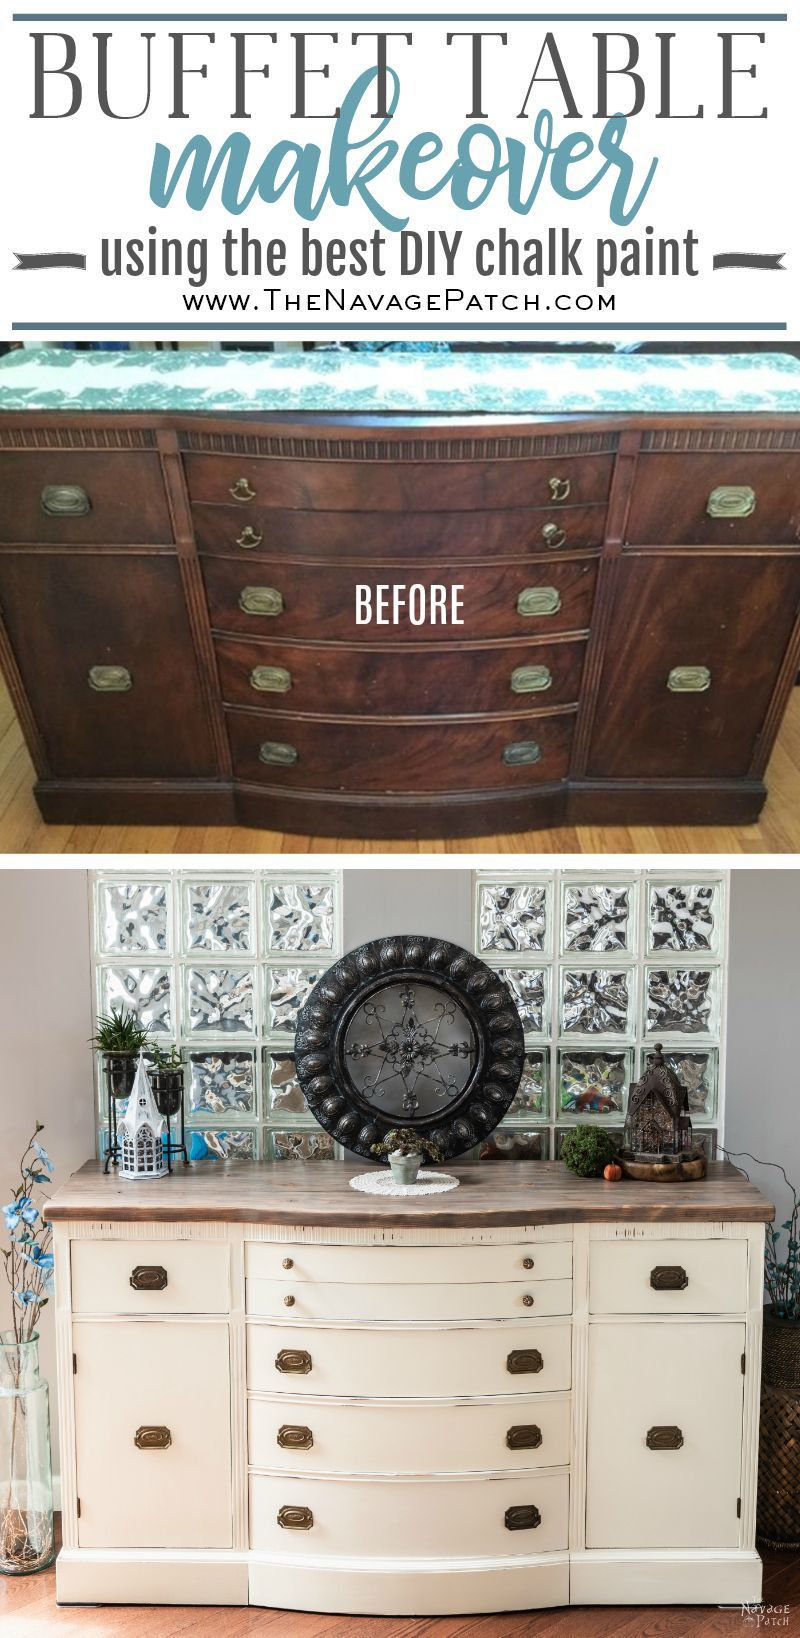 Vintage Buffet Makeover How To Paint A Buffet Table The Navage Patch Buffet Makeover Vintage Buffet Buffet Table Decor